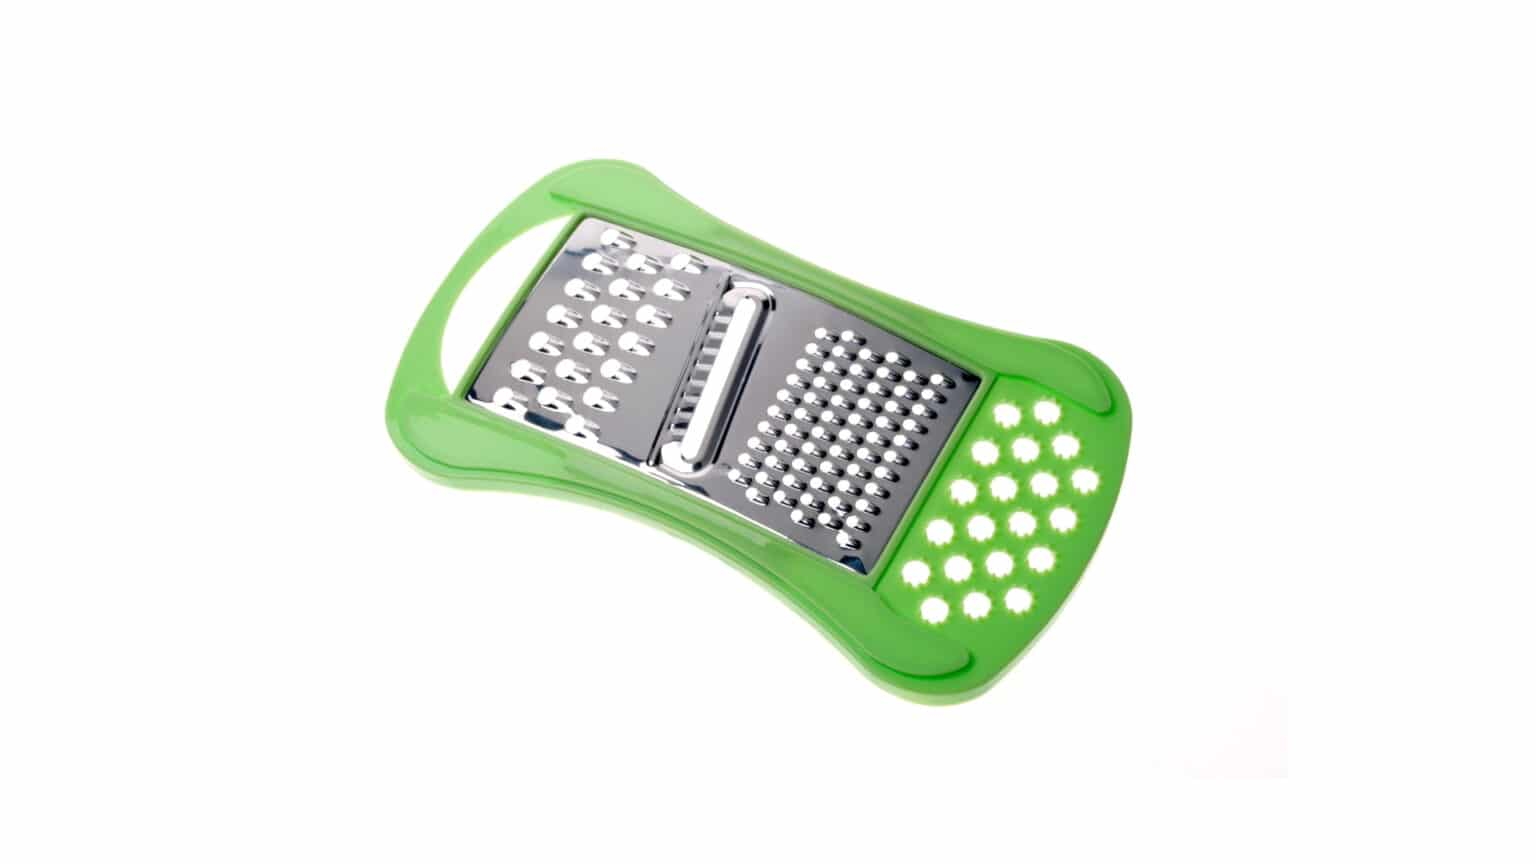 Evaluation of The Working Garlic Grater Cloves